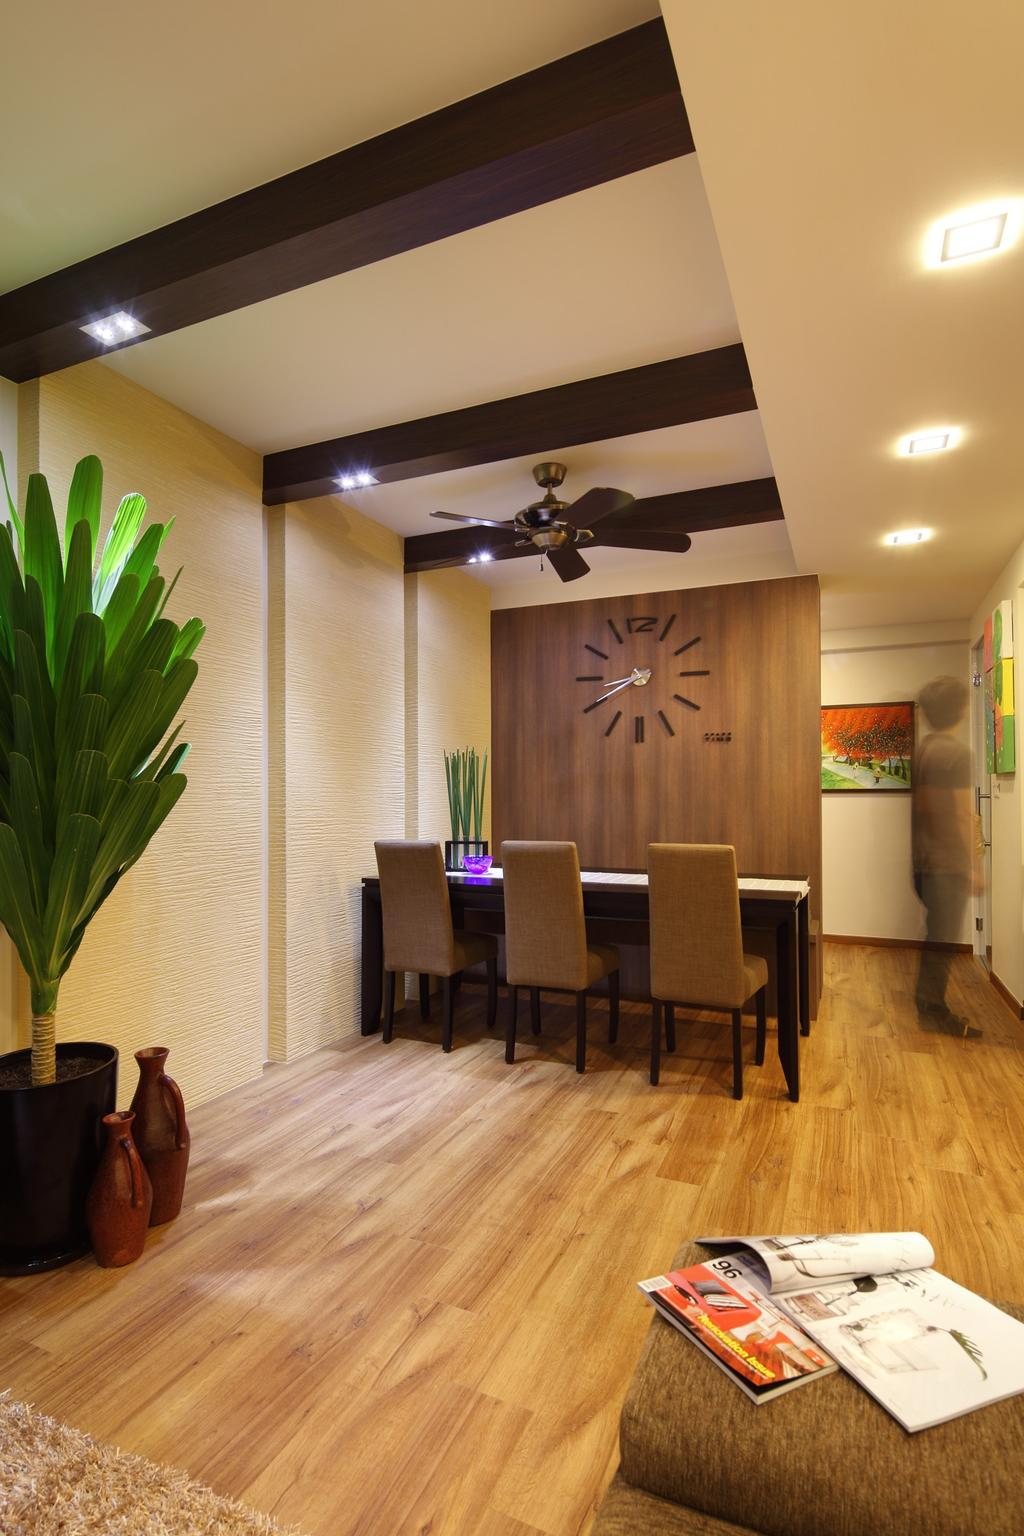 Traditional, HDB, Dining Room, Havelock Road, Interior Designer, Space Define Interior, Parquet, Stacco Wall, Raw, Balinese, Ceiling Beams, False Ceiling, Recessed Lighting, Indented Lighting, Chair, Dining Table, Painting, Sculpture, Clock, Ceiling Fan, Parquet Wall, Wood Laminate, Wood, Laminate, Flora, Jar, Plant, Potted Plant, Pottery, Vase, Couch, Furniture, Table, Indoors, Interior Design, Room, Pot